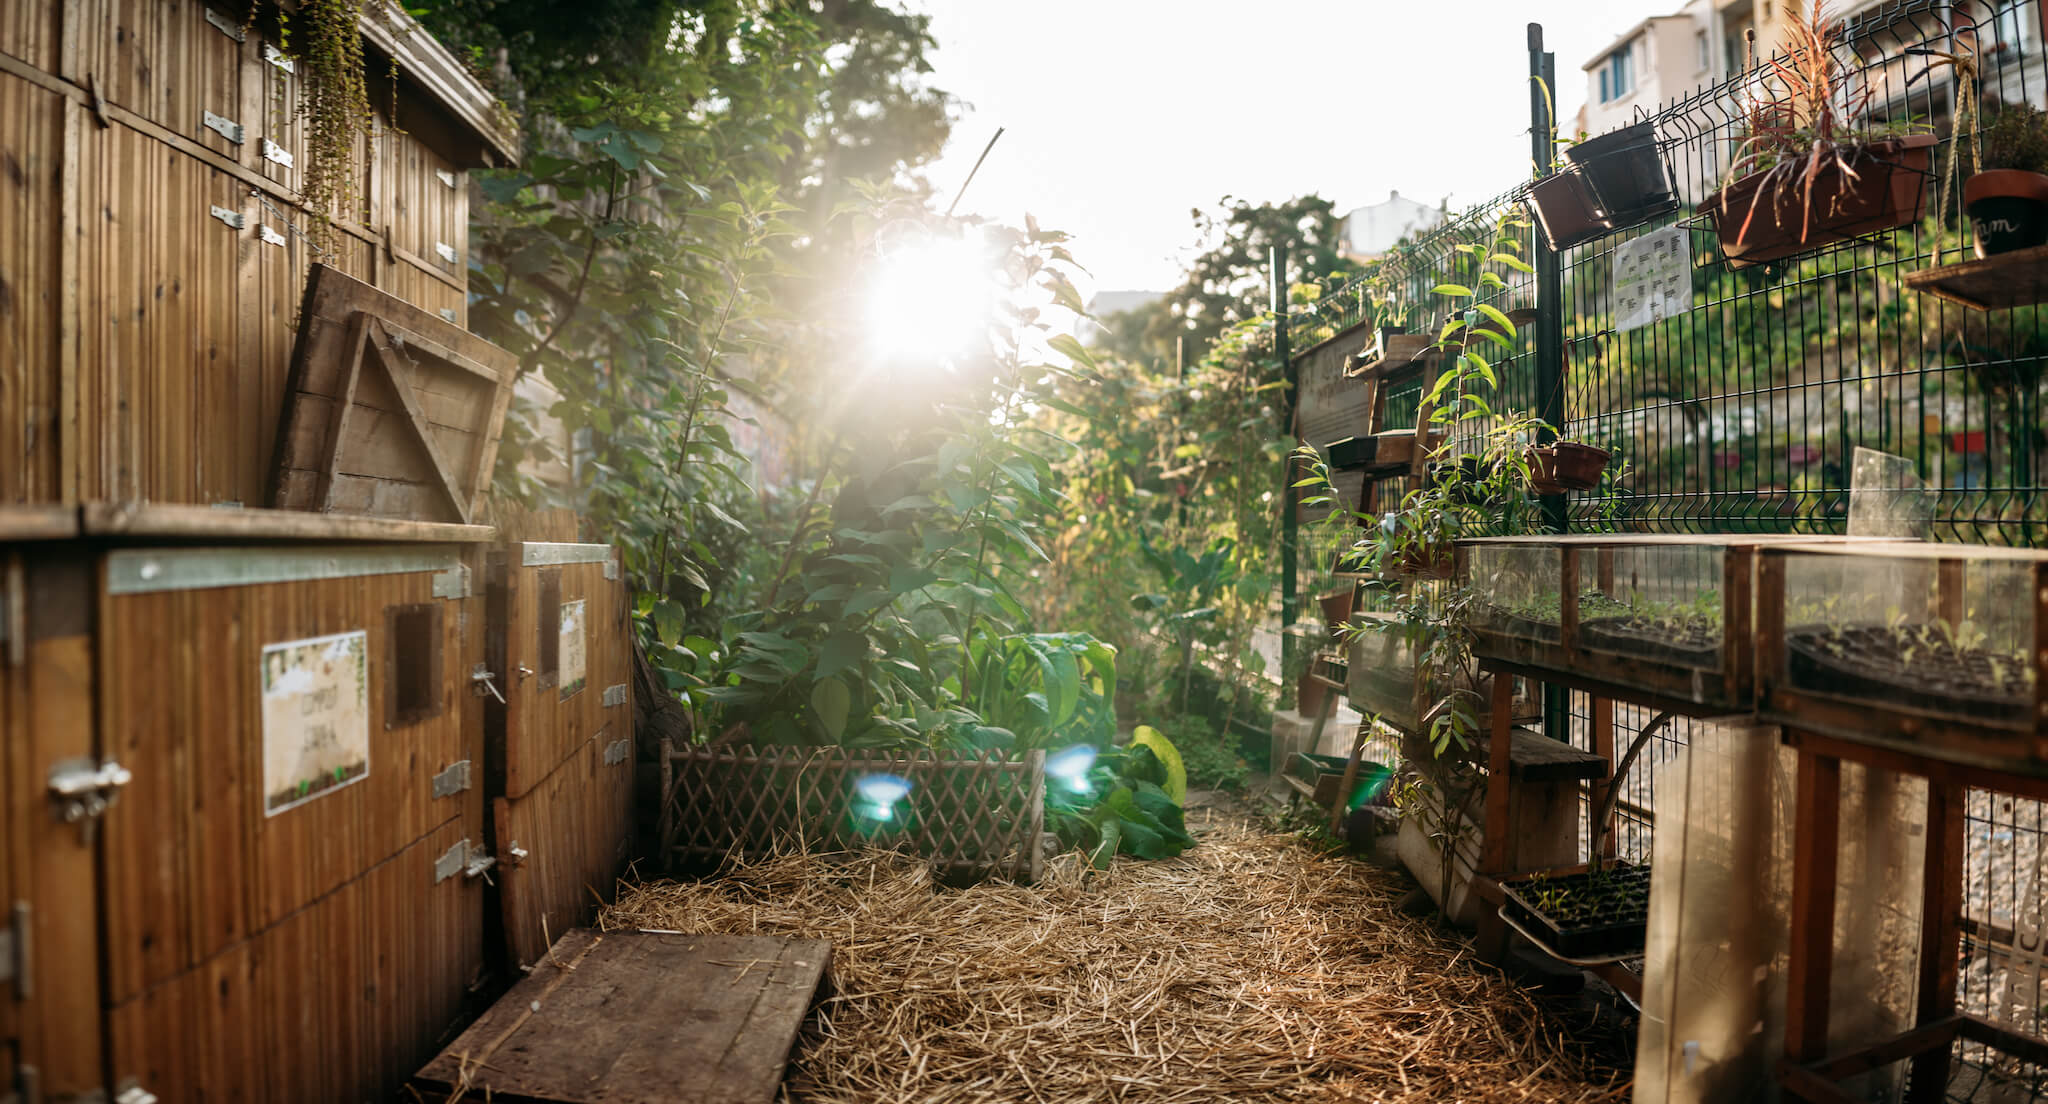 Golden sunlight beams through leafy plants at La REcyclerie, a community space and restaurant in Paris' 18th arrondissement.